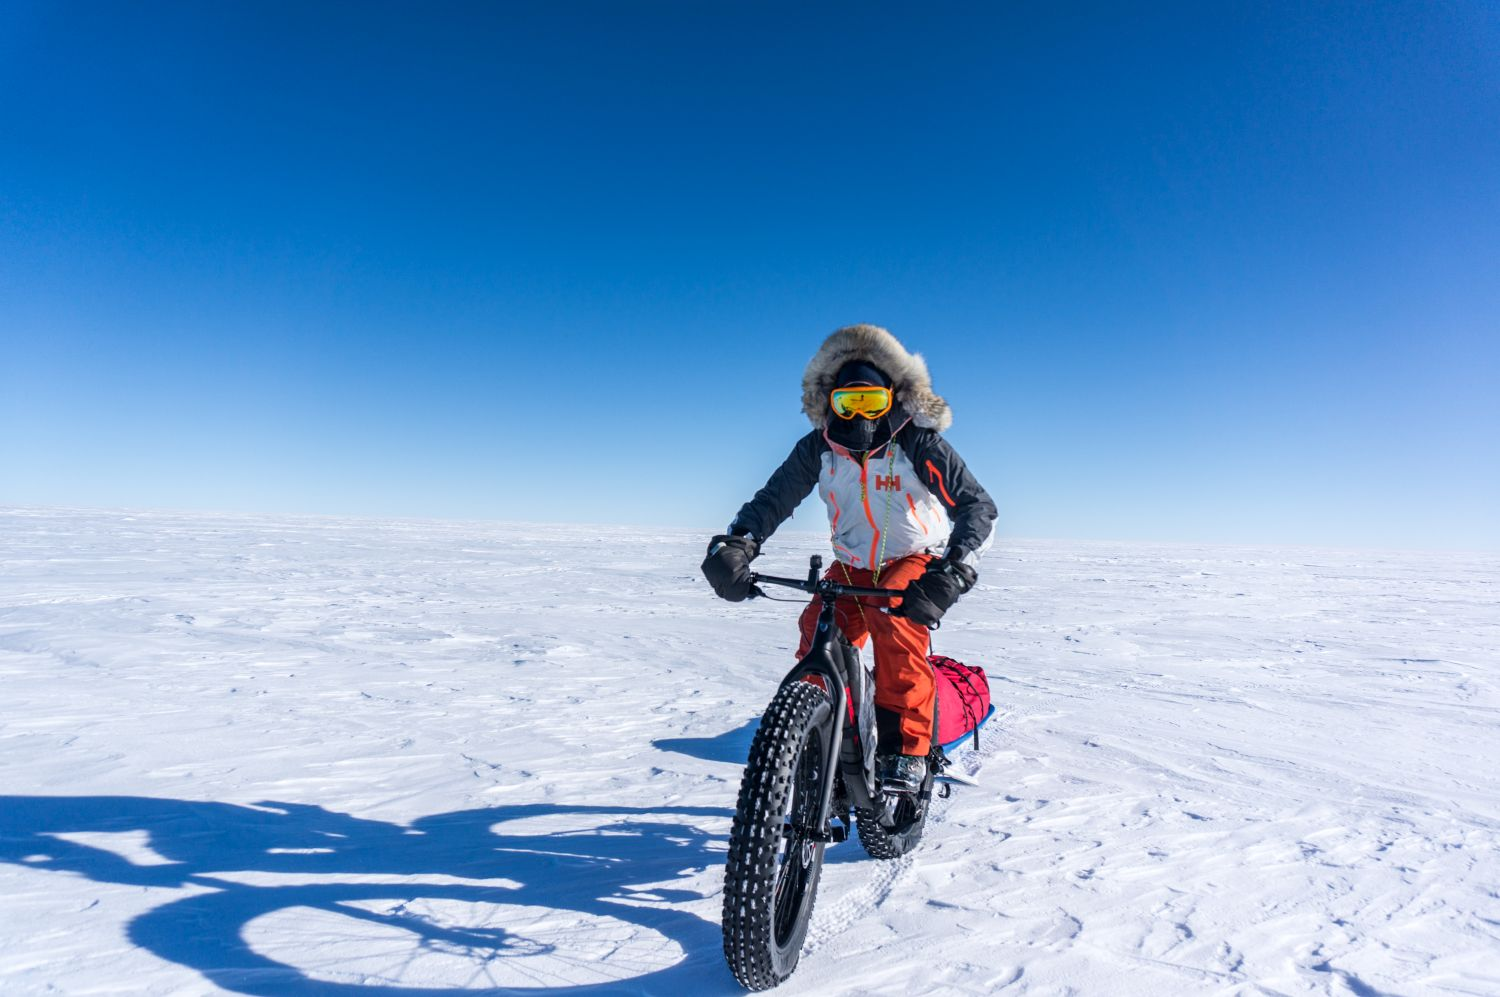 American polar adventurer and educator Eric Larsen is the first person to have set foot at the North Pole, the South Pole, and atop Mount Everest within 365 days. He talks about his fitness regime, the popularity of polar expedition tourism, and offers tips for traveling to the planet's coldest destinations.